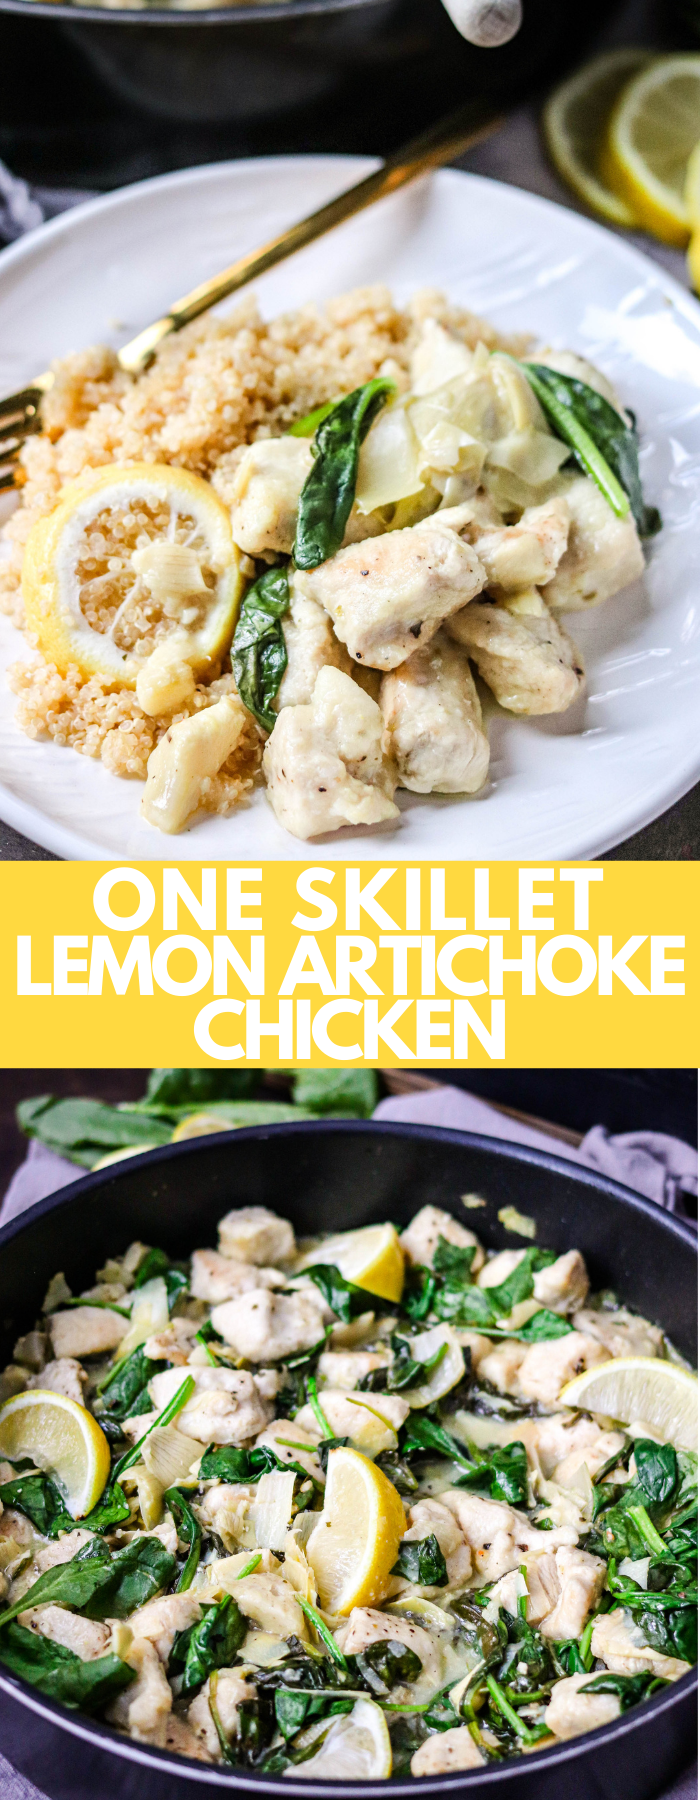 This One Skillet Lemon Artichoke Chicken is a delicious meal that takes little effort but delivers big flavors! This is a healthy and easy dinner! Fits into LOW CARB, KETO, WEIGHT WATCHERS, PALEO, WHOLE30, and many other diet with only 195 calories, 4g fat, 11g carbs, and 26g protein per serving!